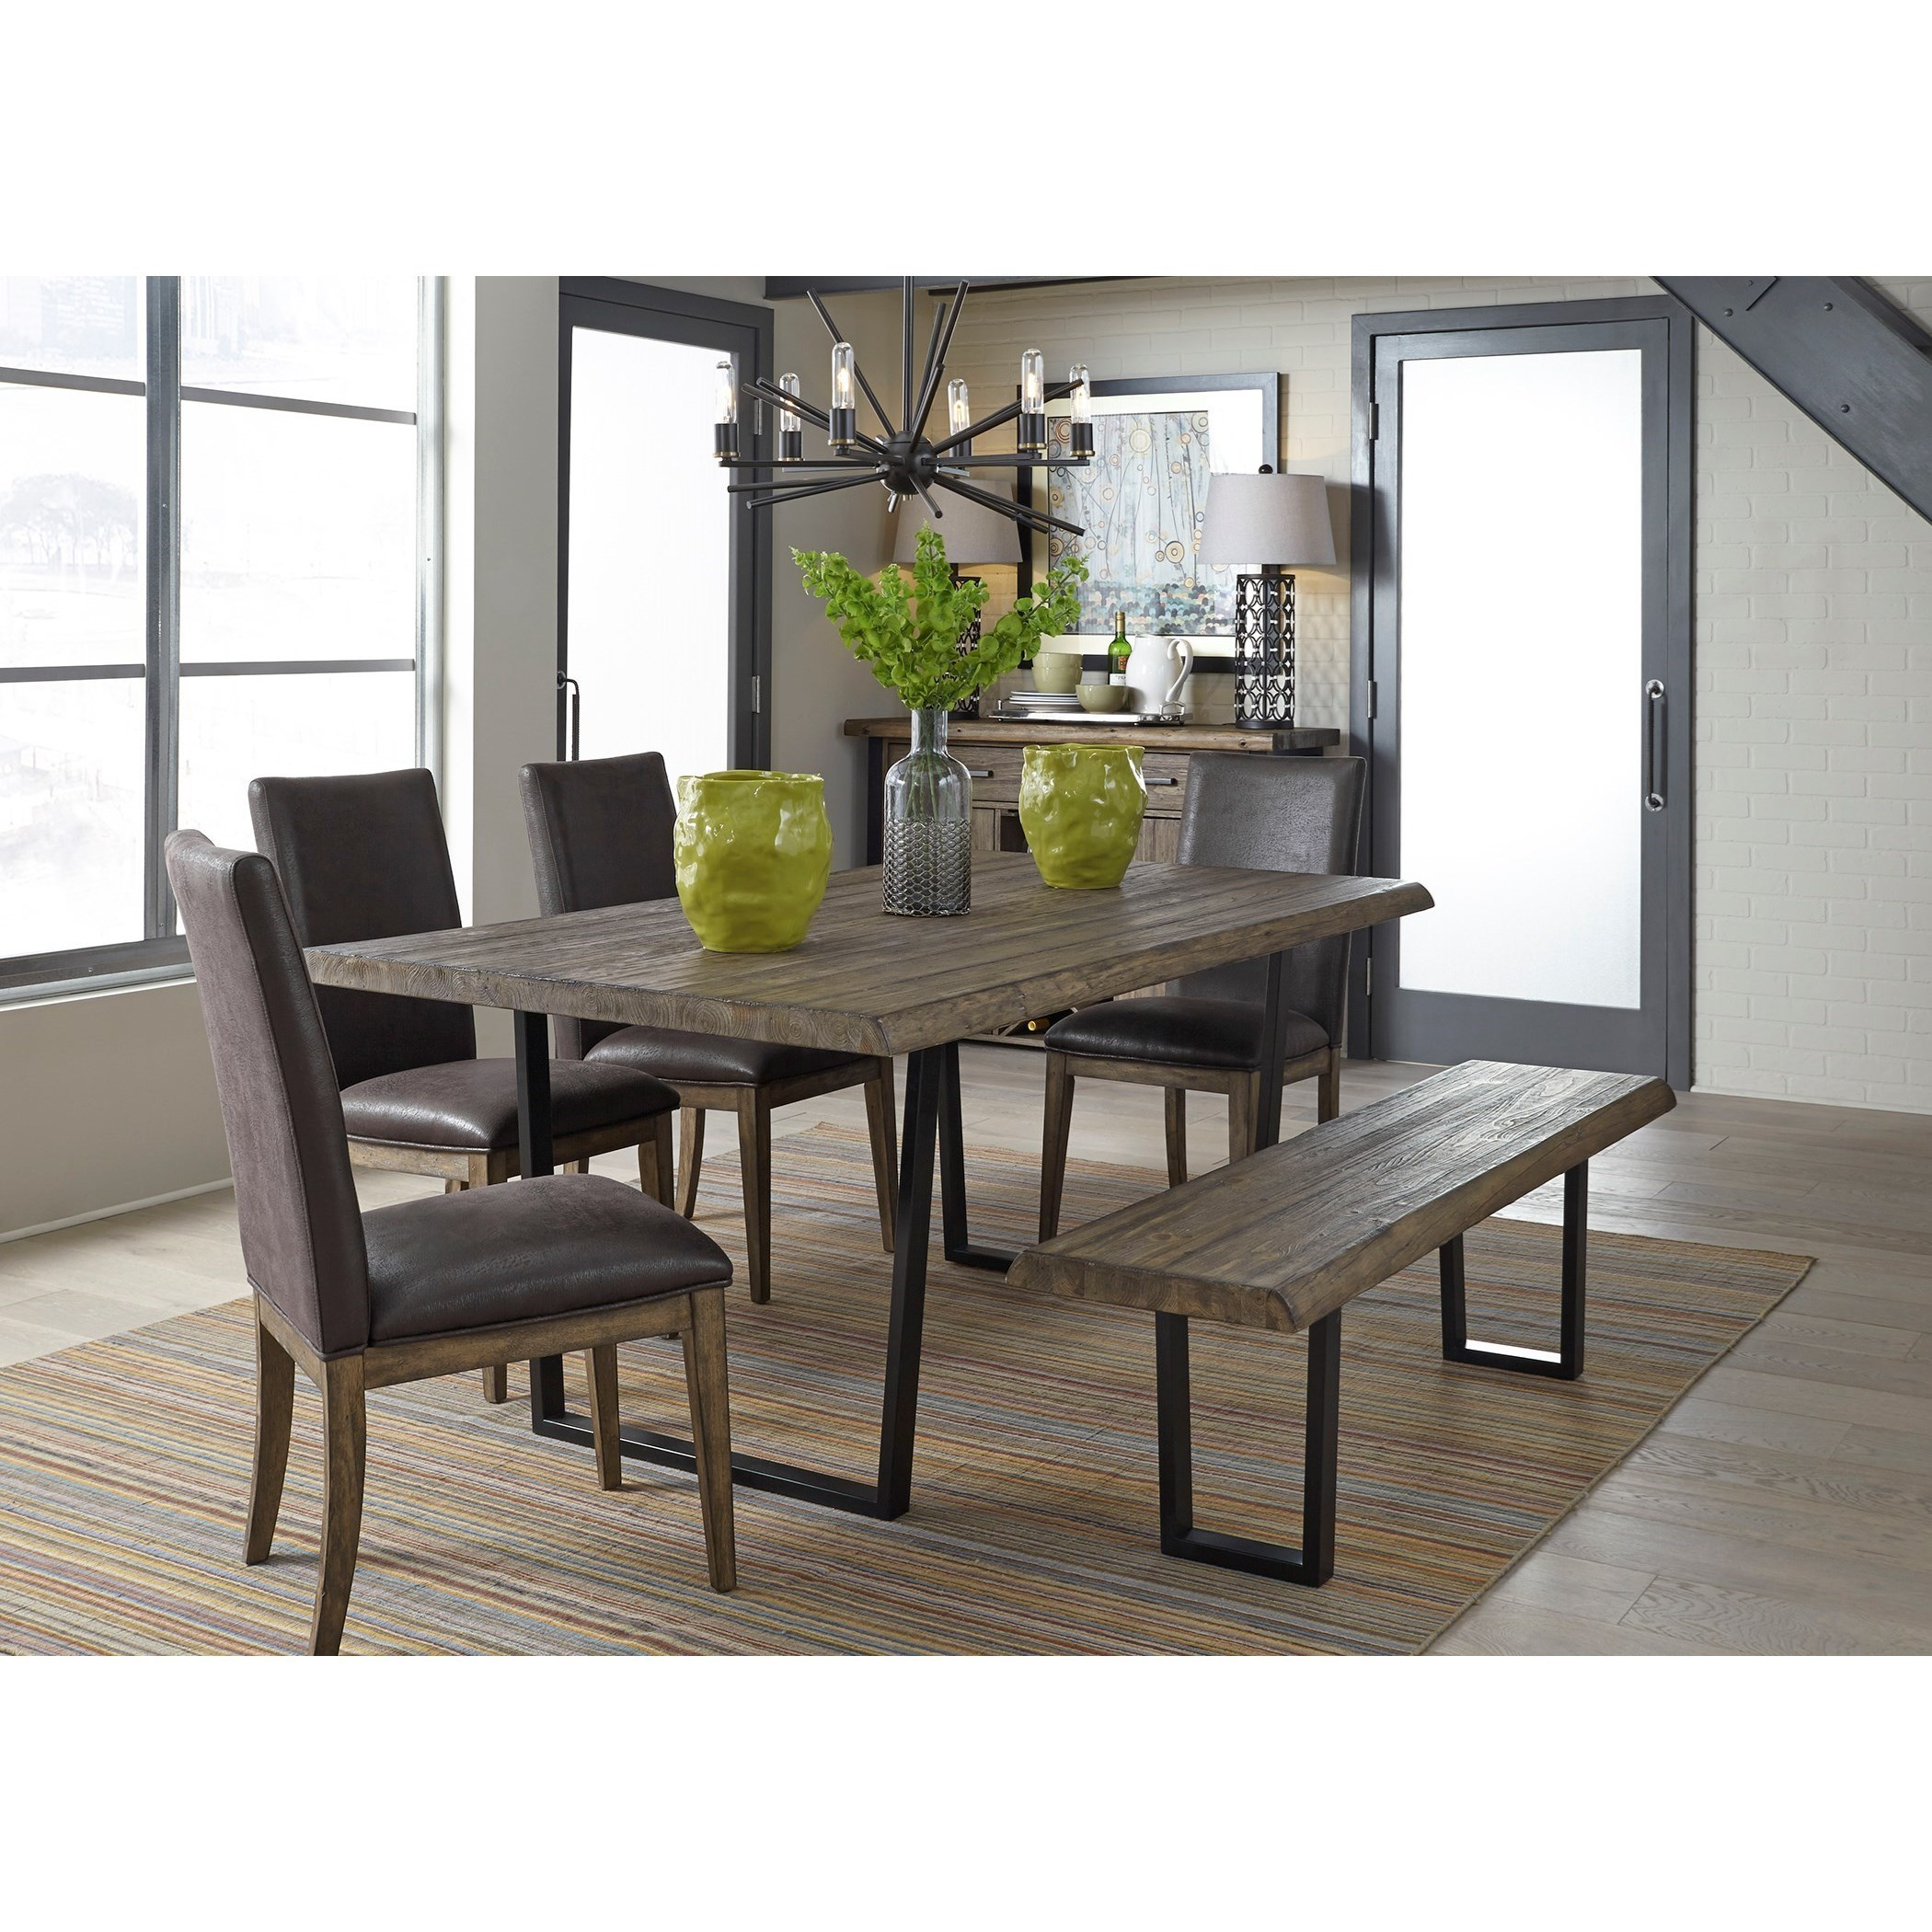 Superbe Liberty Furniture Haley SpringsCasual Dining Room Group